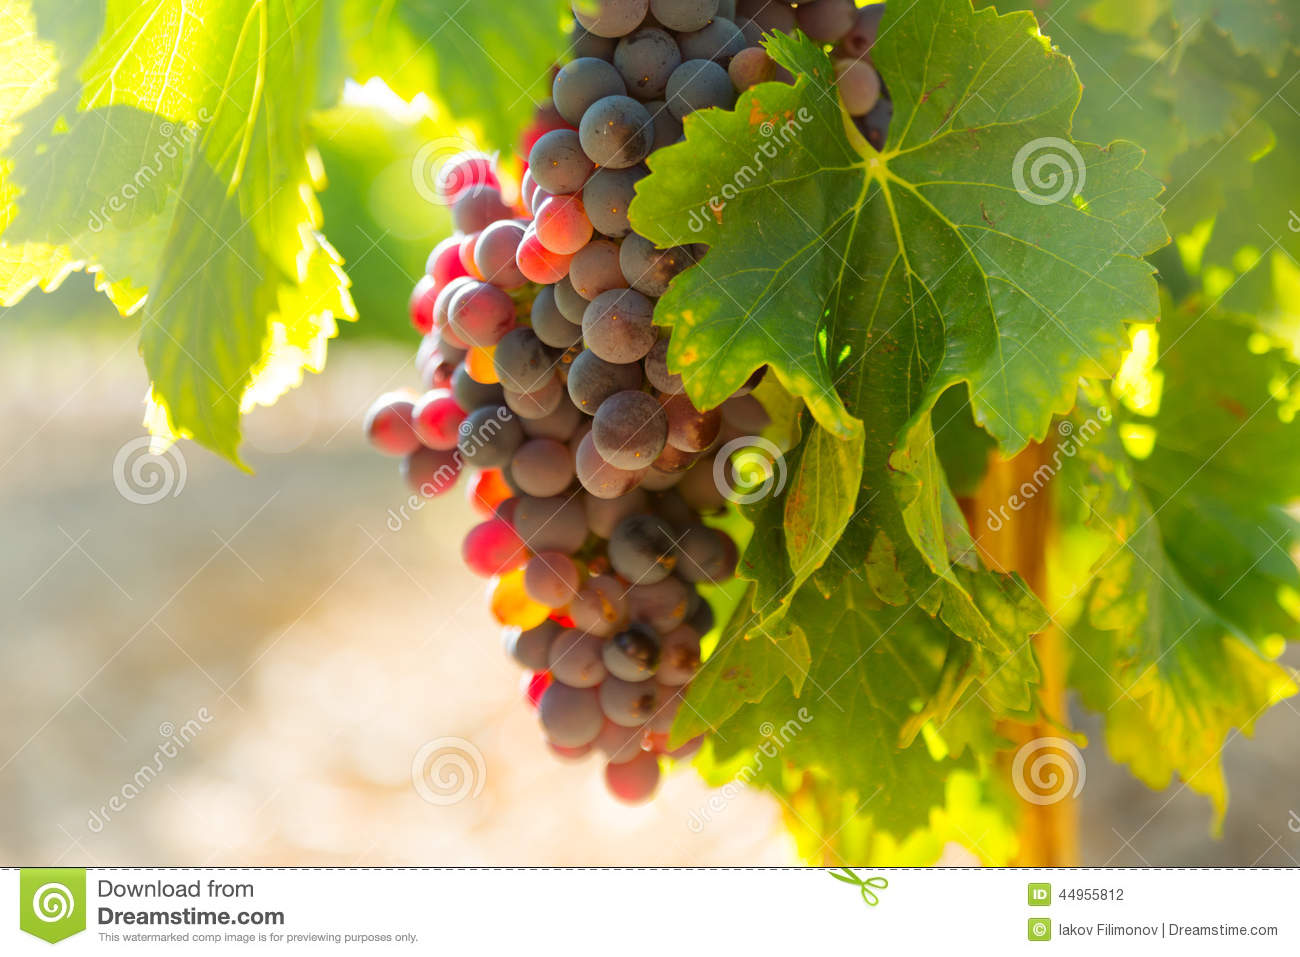 Grapes at vineyards plant in sunny day